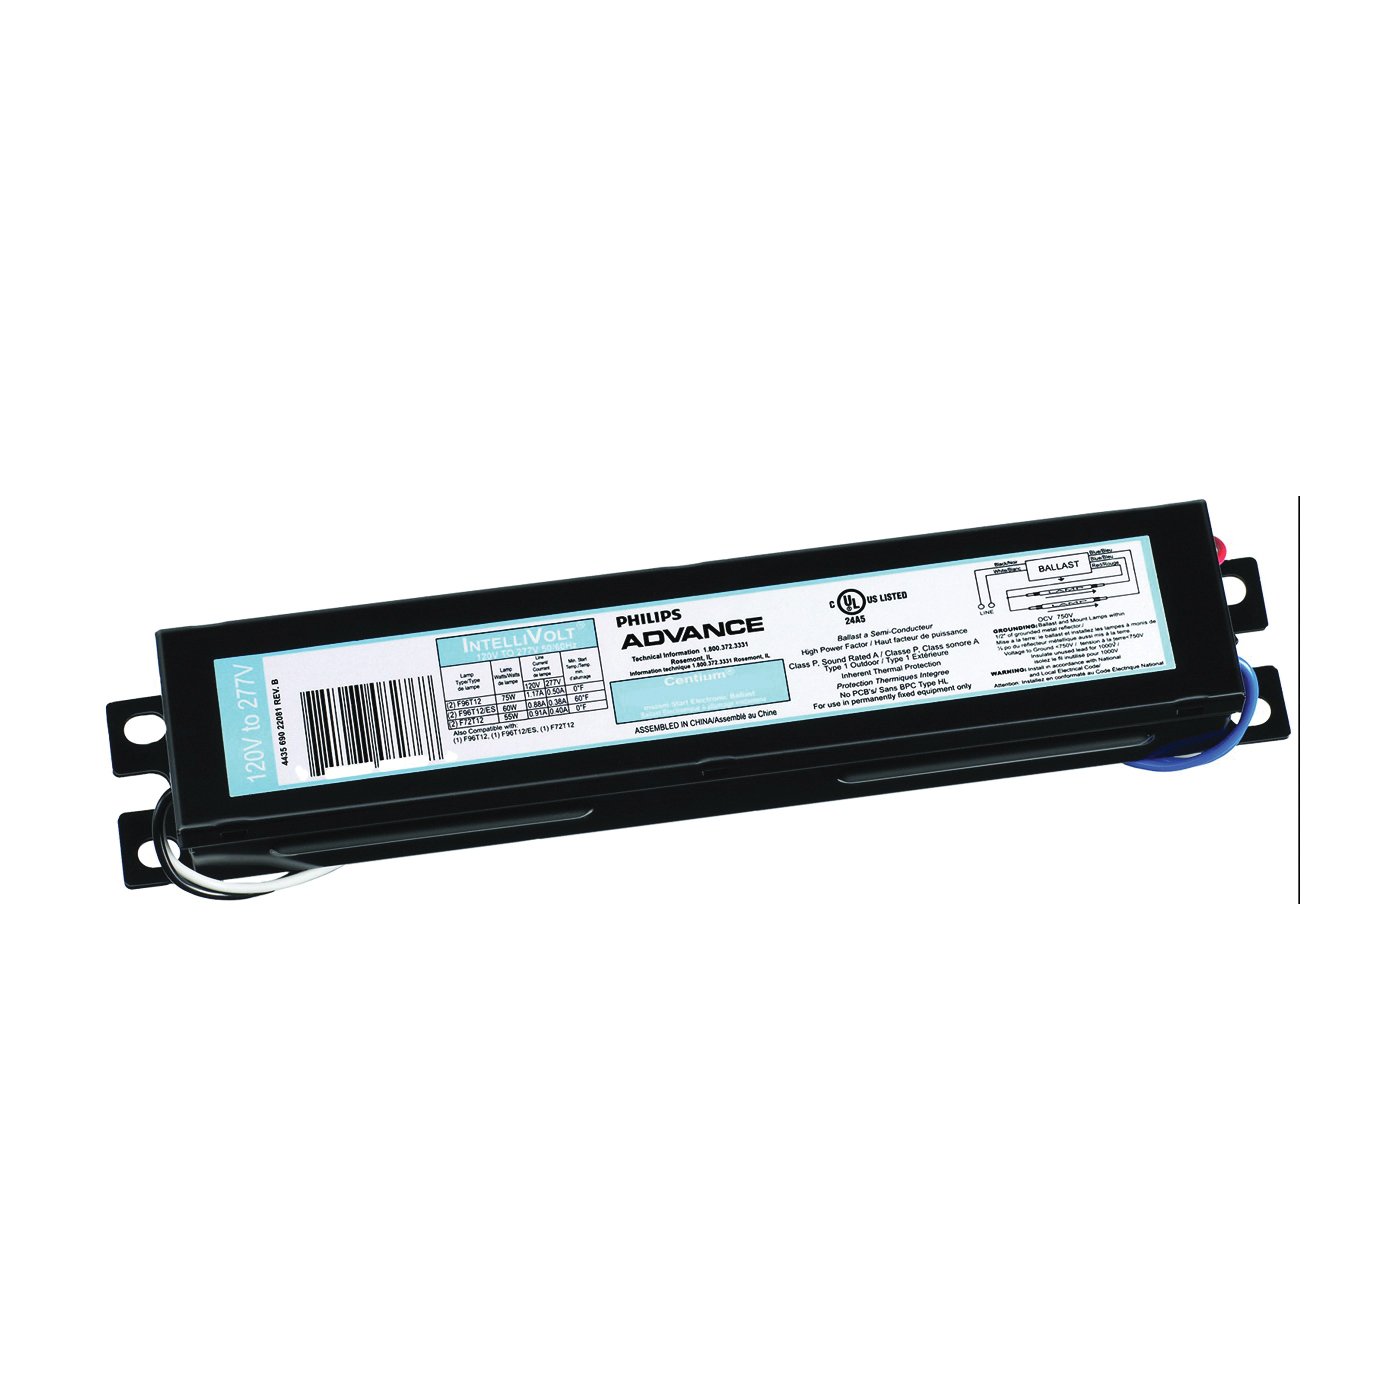 Picture of Philips Advance Centium ICN2P60N35I Electronic Ballast, 120/277 V, 132 to 135 W, 2-Lamp